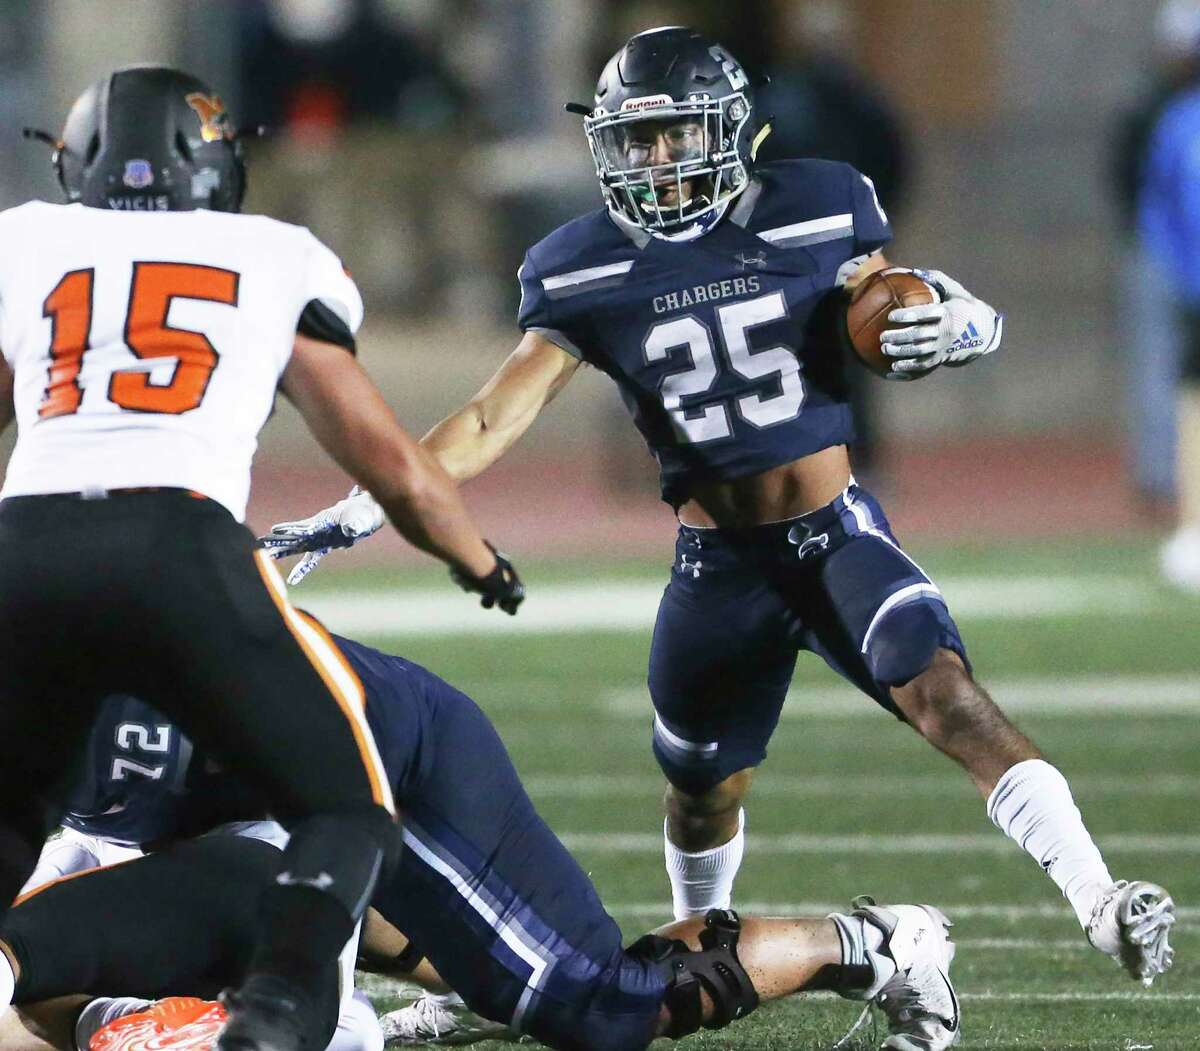 Chargers srunning back Alex Rodriguez steps out to make a move away from Seth Bullard as Boerne Champion hosts Medina Valley at Greyhound Stadium on Oct. 23, 2020.